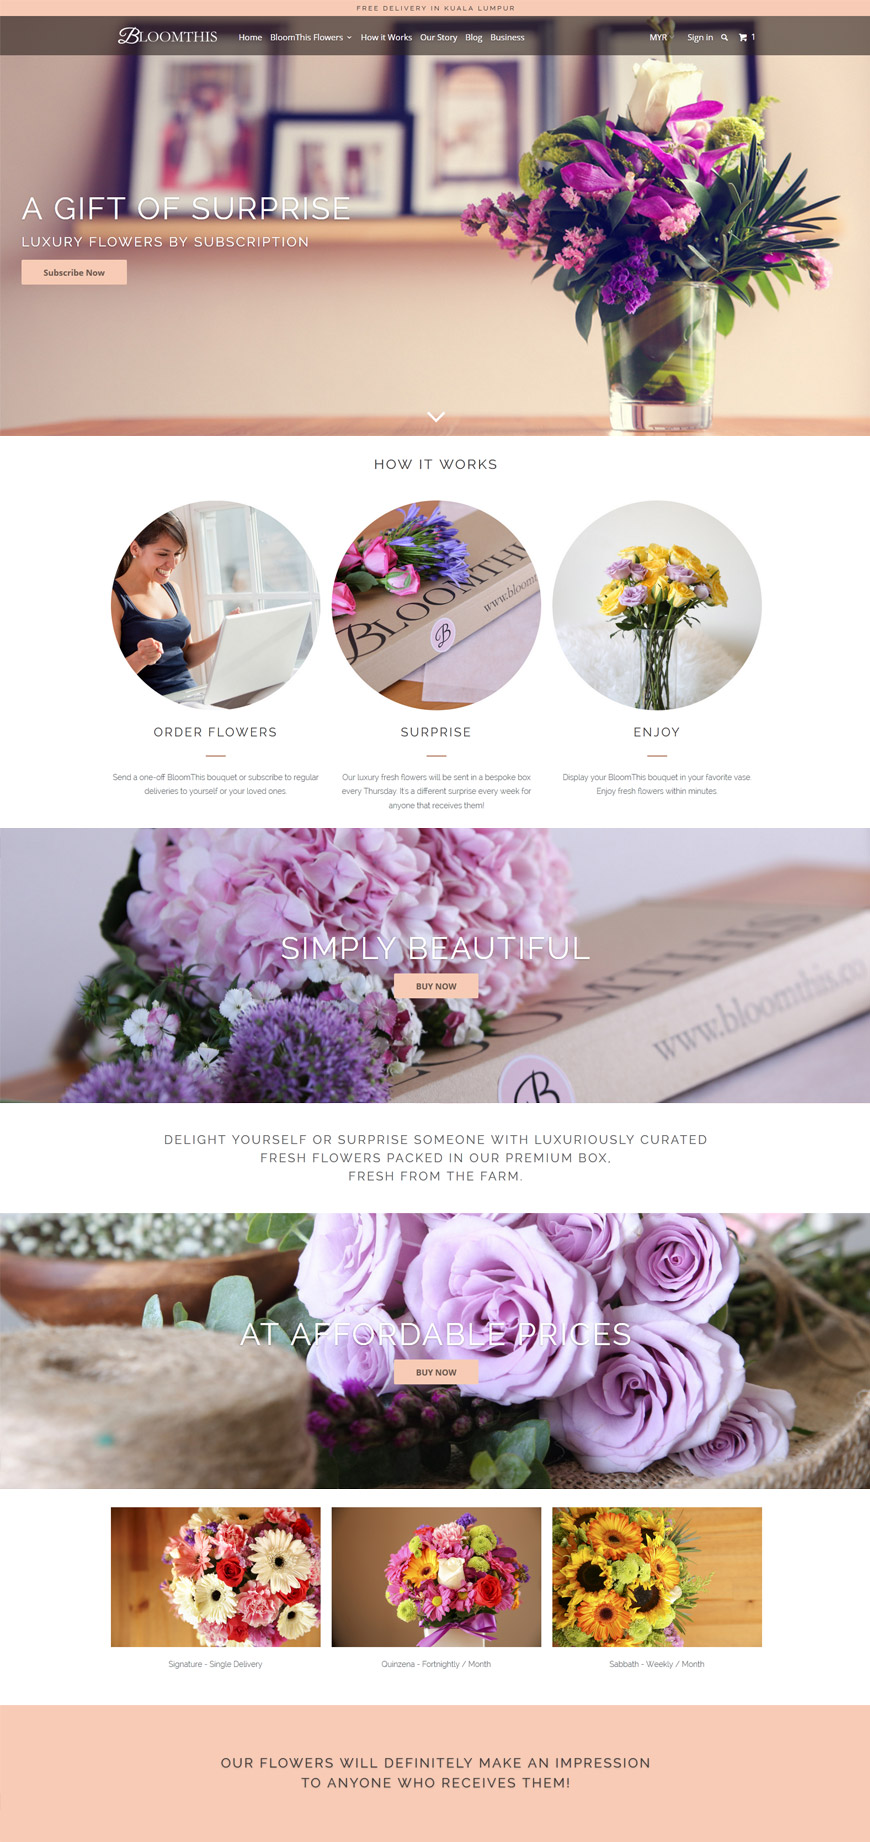 bloomthis.co